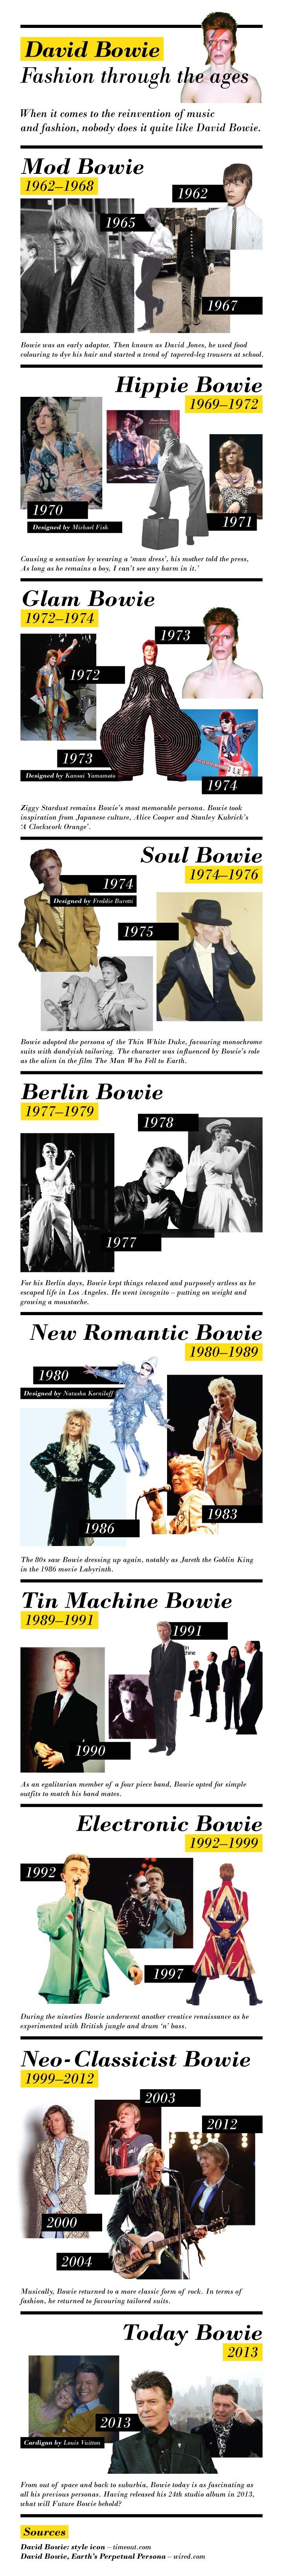 #INFOgraphic > David Bowie Personas: With 66 years old, David Bowie has been spreading style and trends for more than five decades.  > http://infographicsmania.com/david-bowie-personas/?utm_source=Pinterest&utm_medium=INFOGRAPHICSMANIA&utm_campaign=SNAP